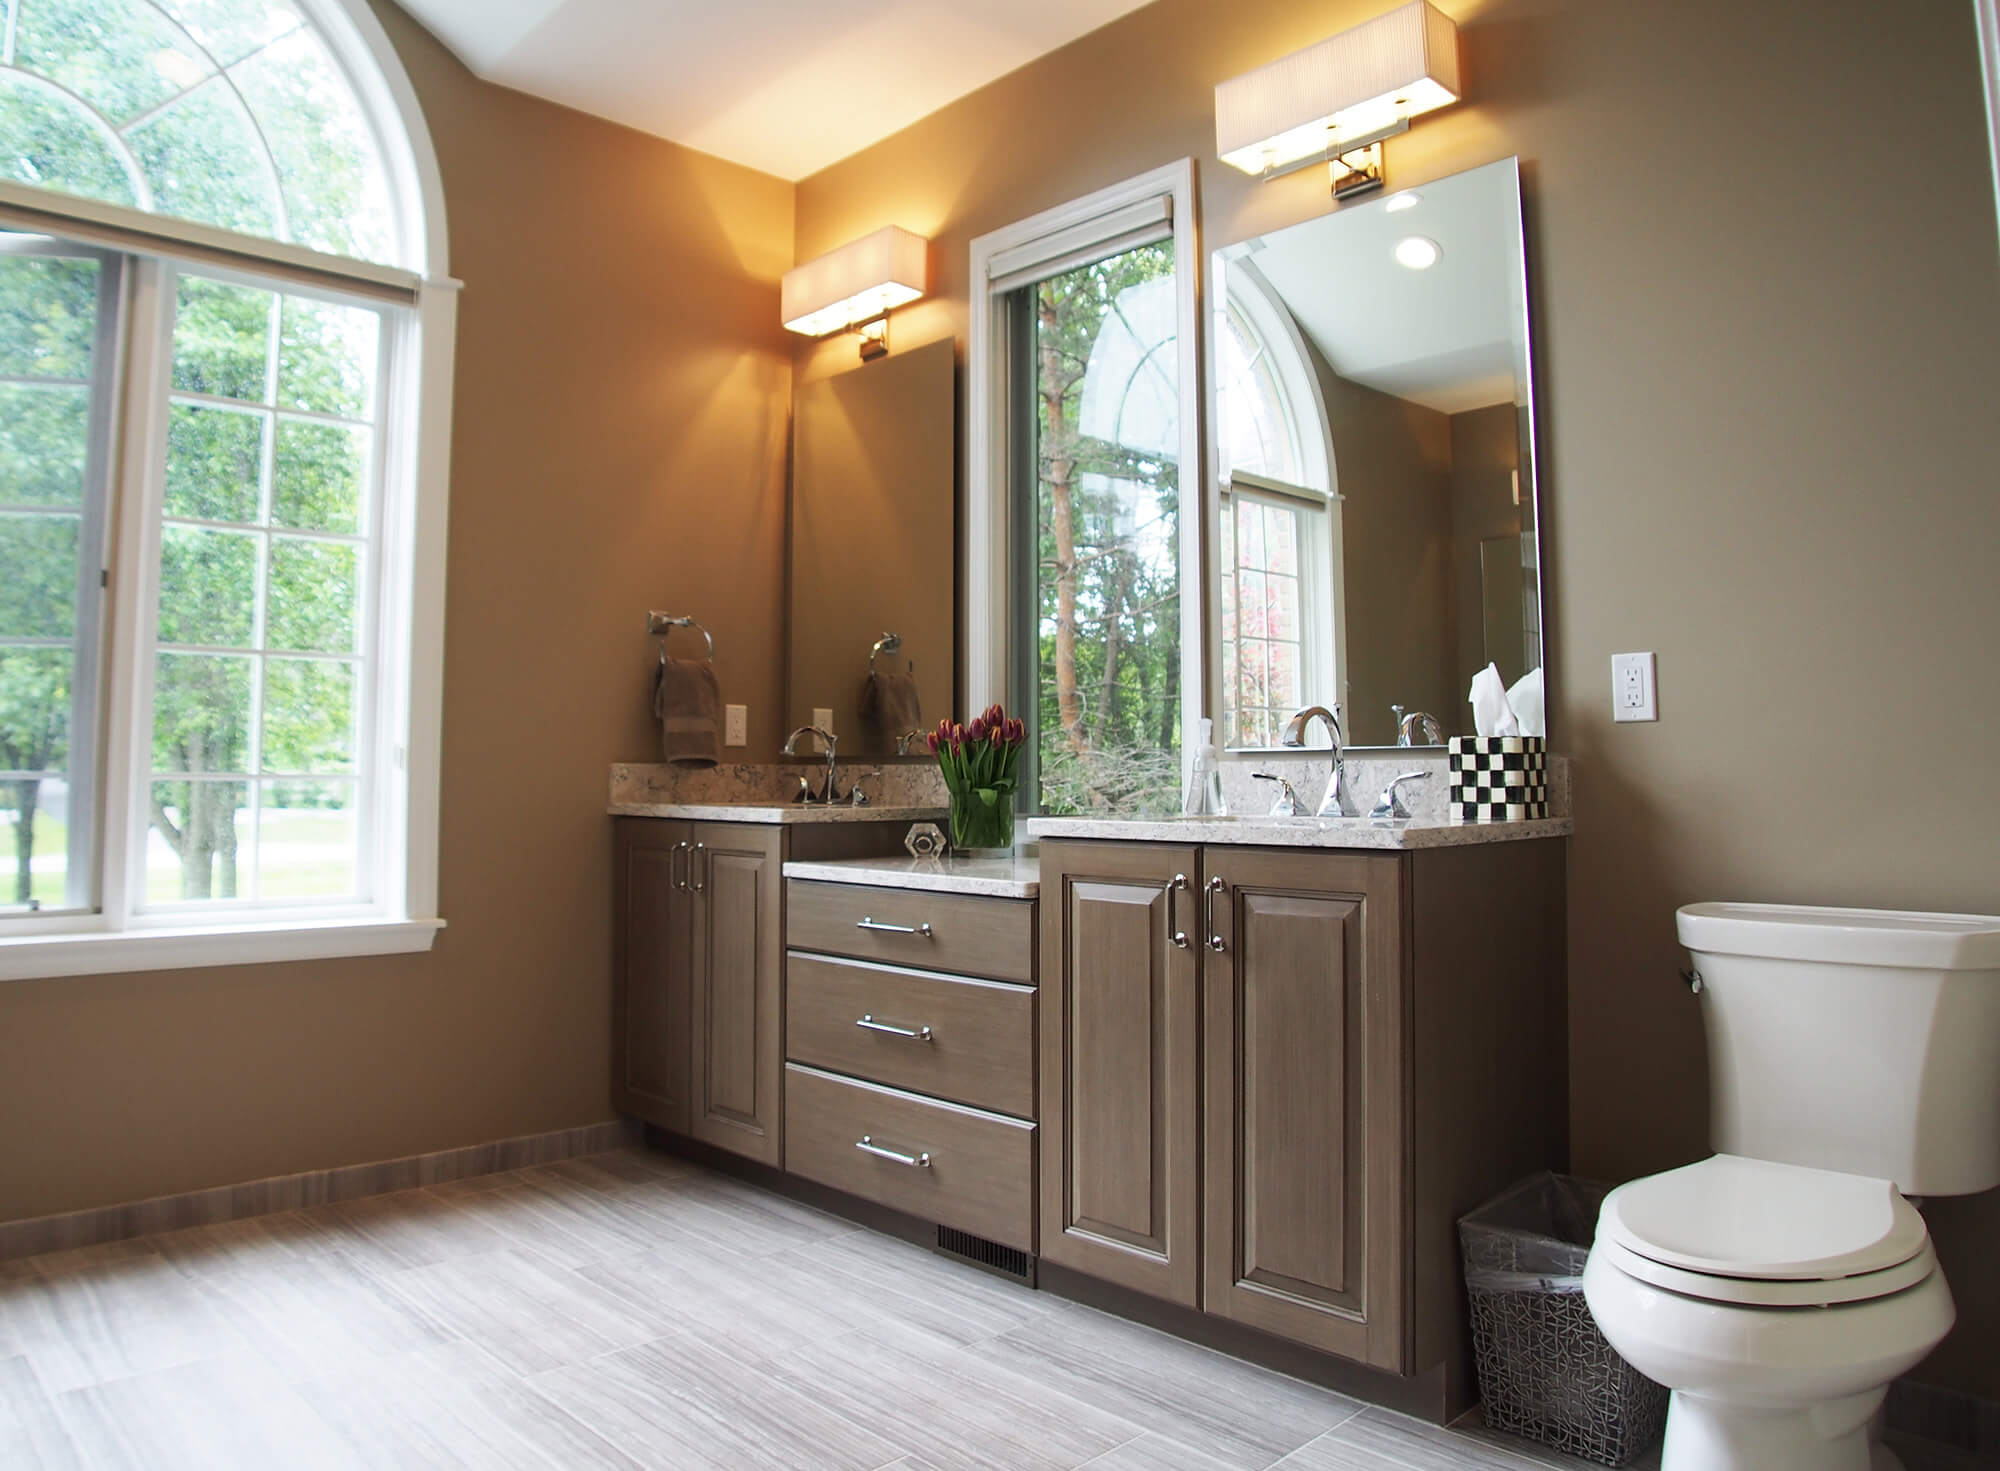 Oakland Township Style Bathroom Renovation